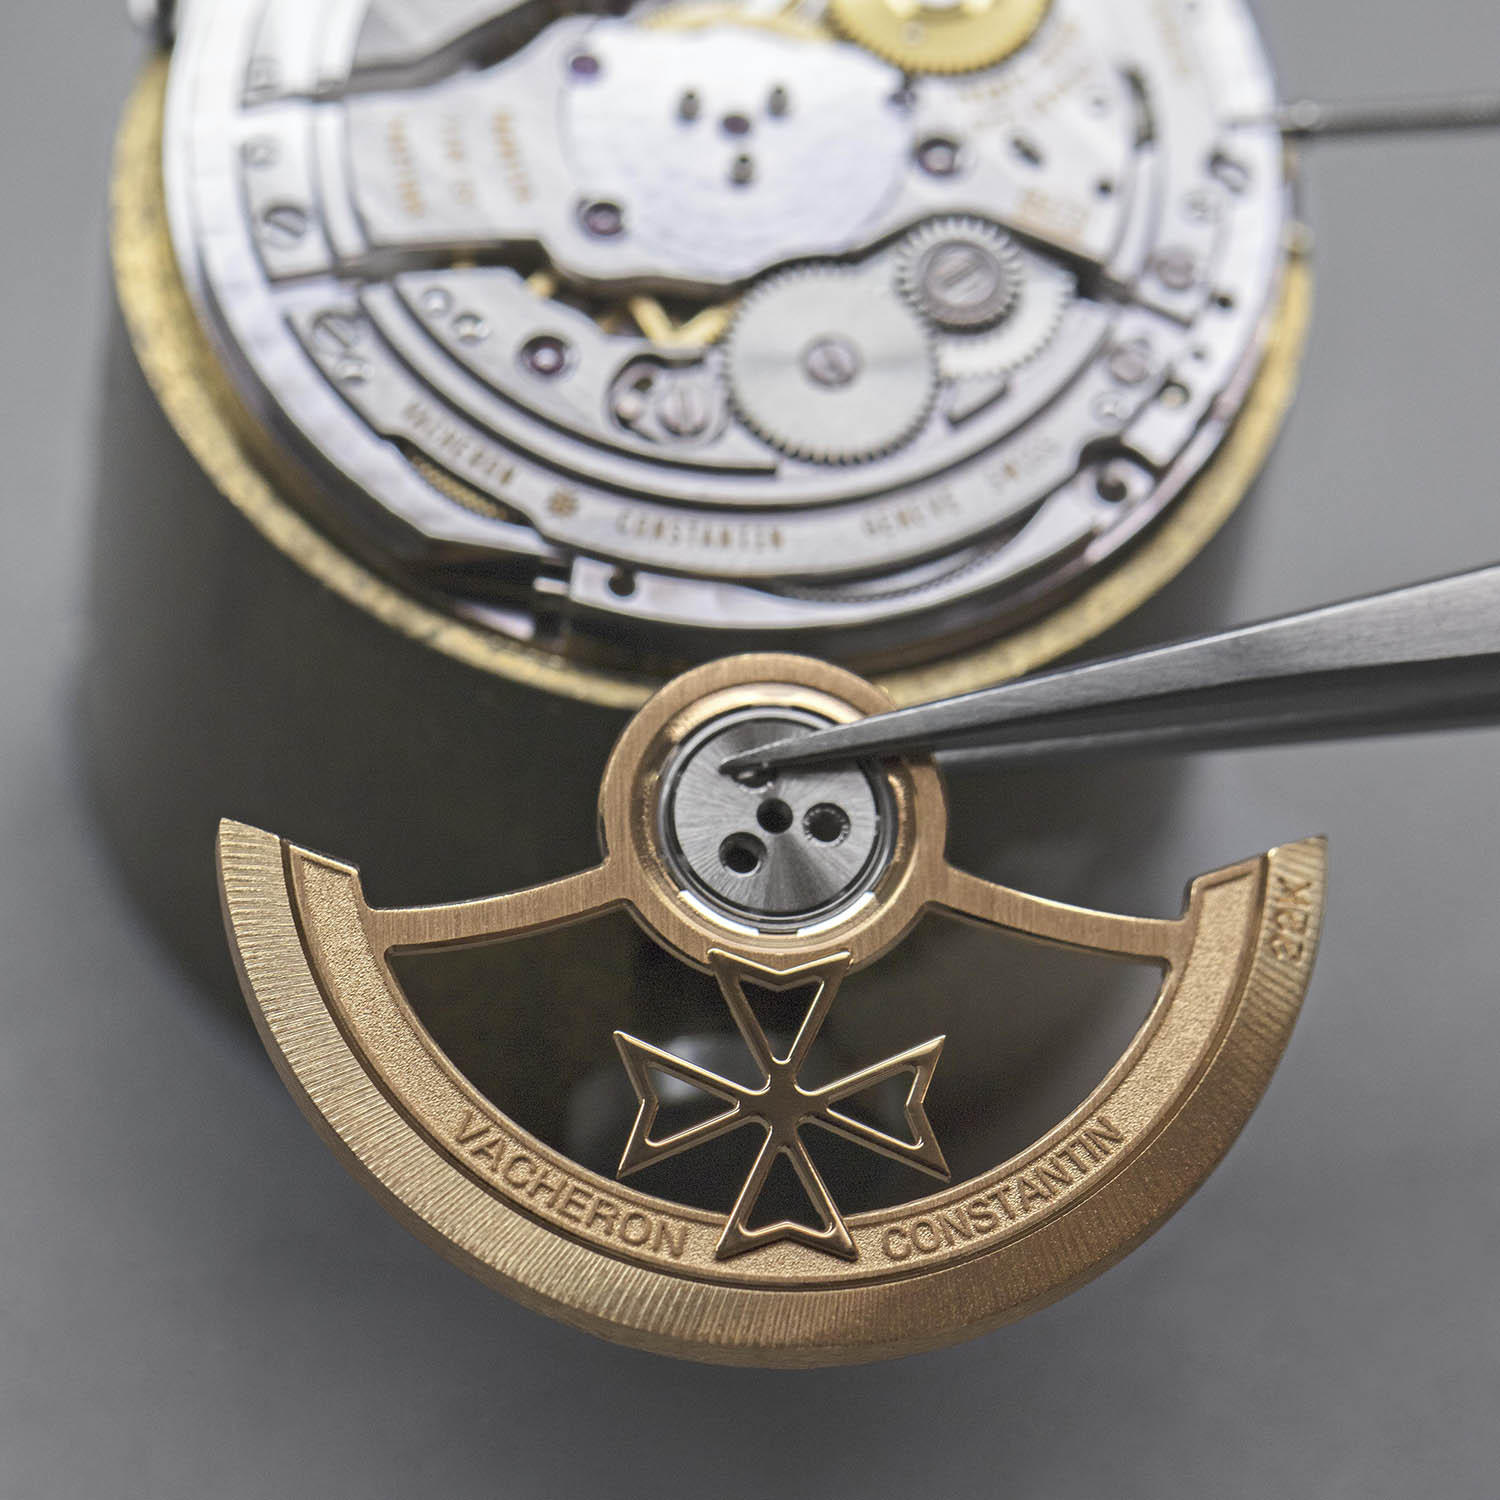 Bespoke Vacheron Constantin up for auction at the Louvre Museum - 1